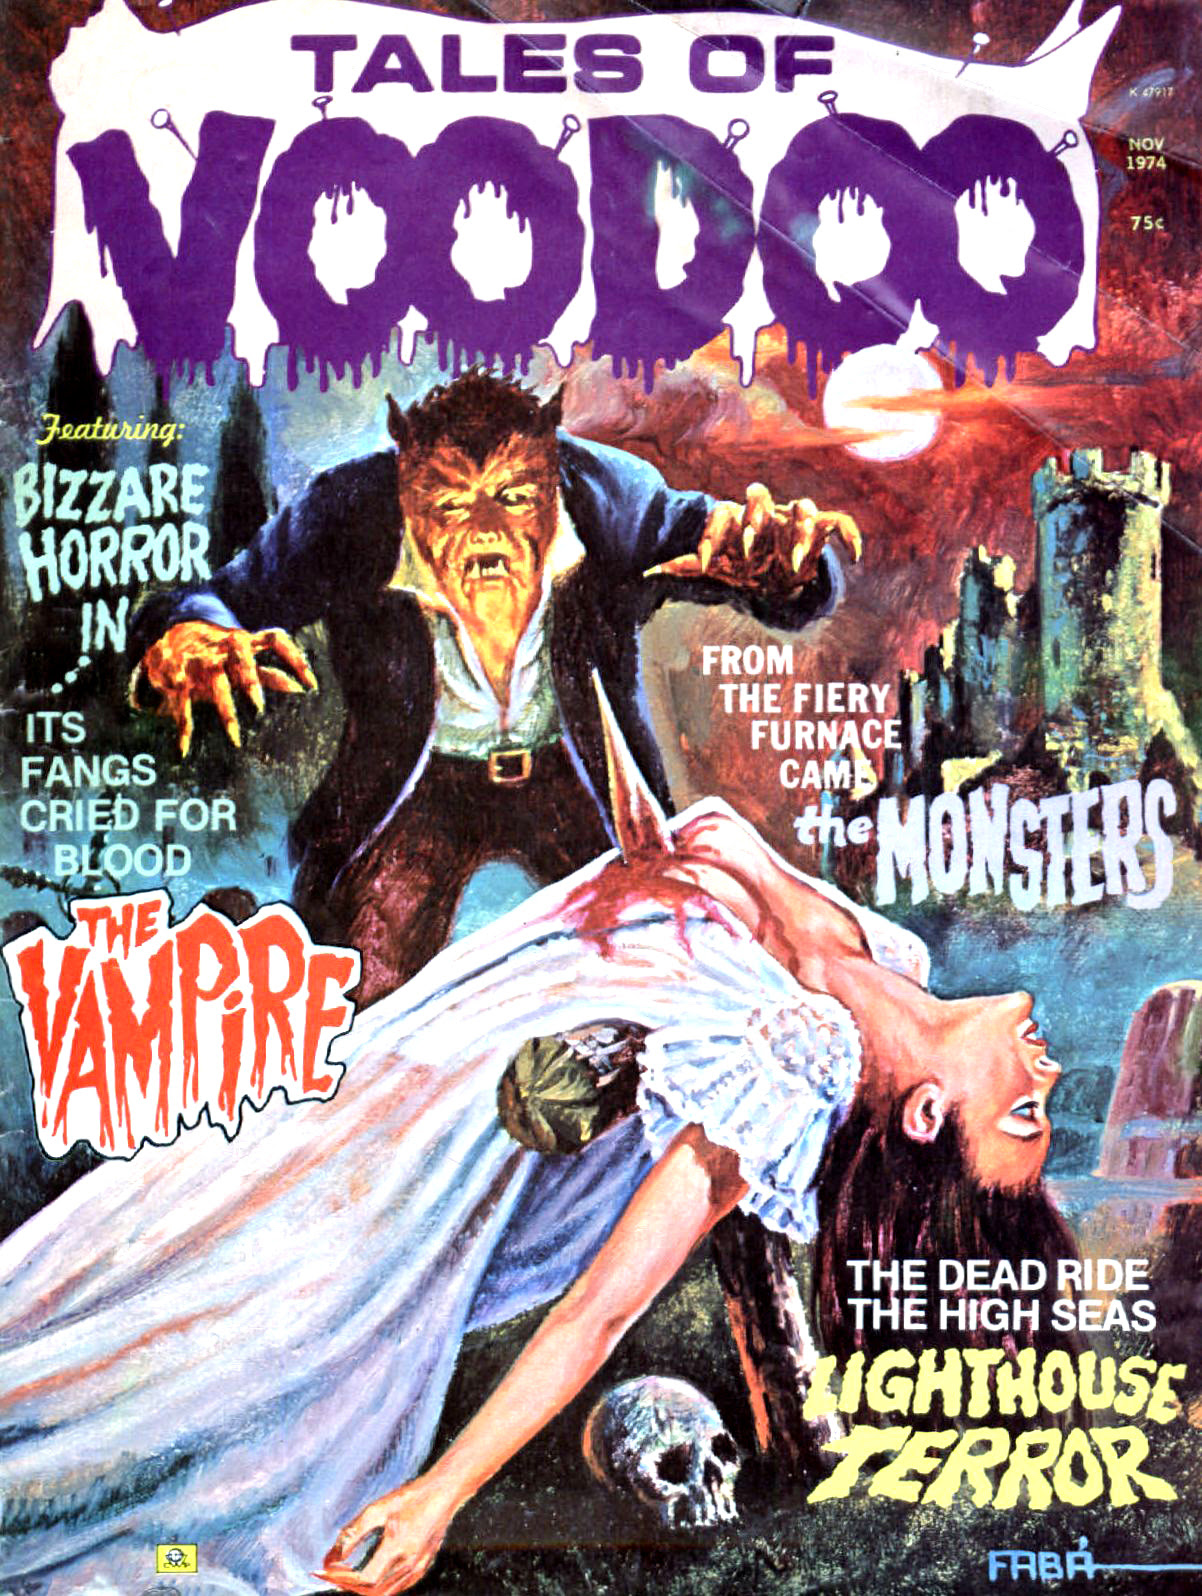 Tales of Voodoo Vol.7 #6 (Eerie Publications 1974)